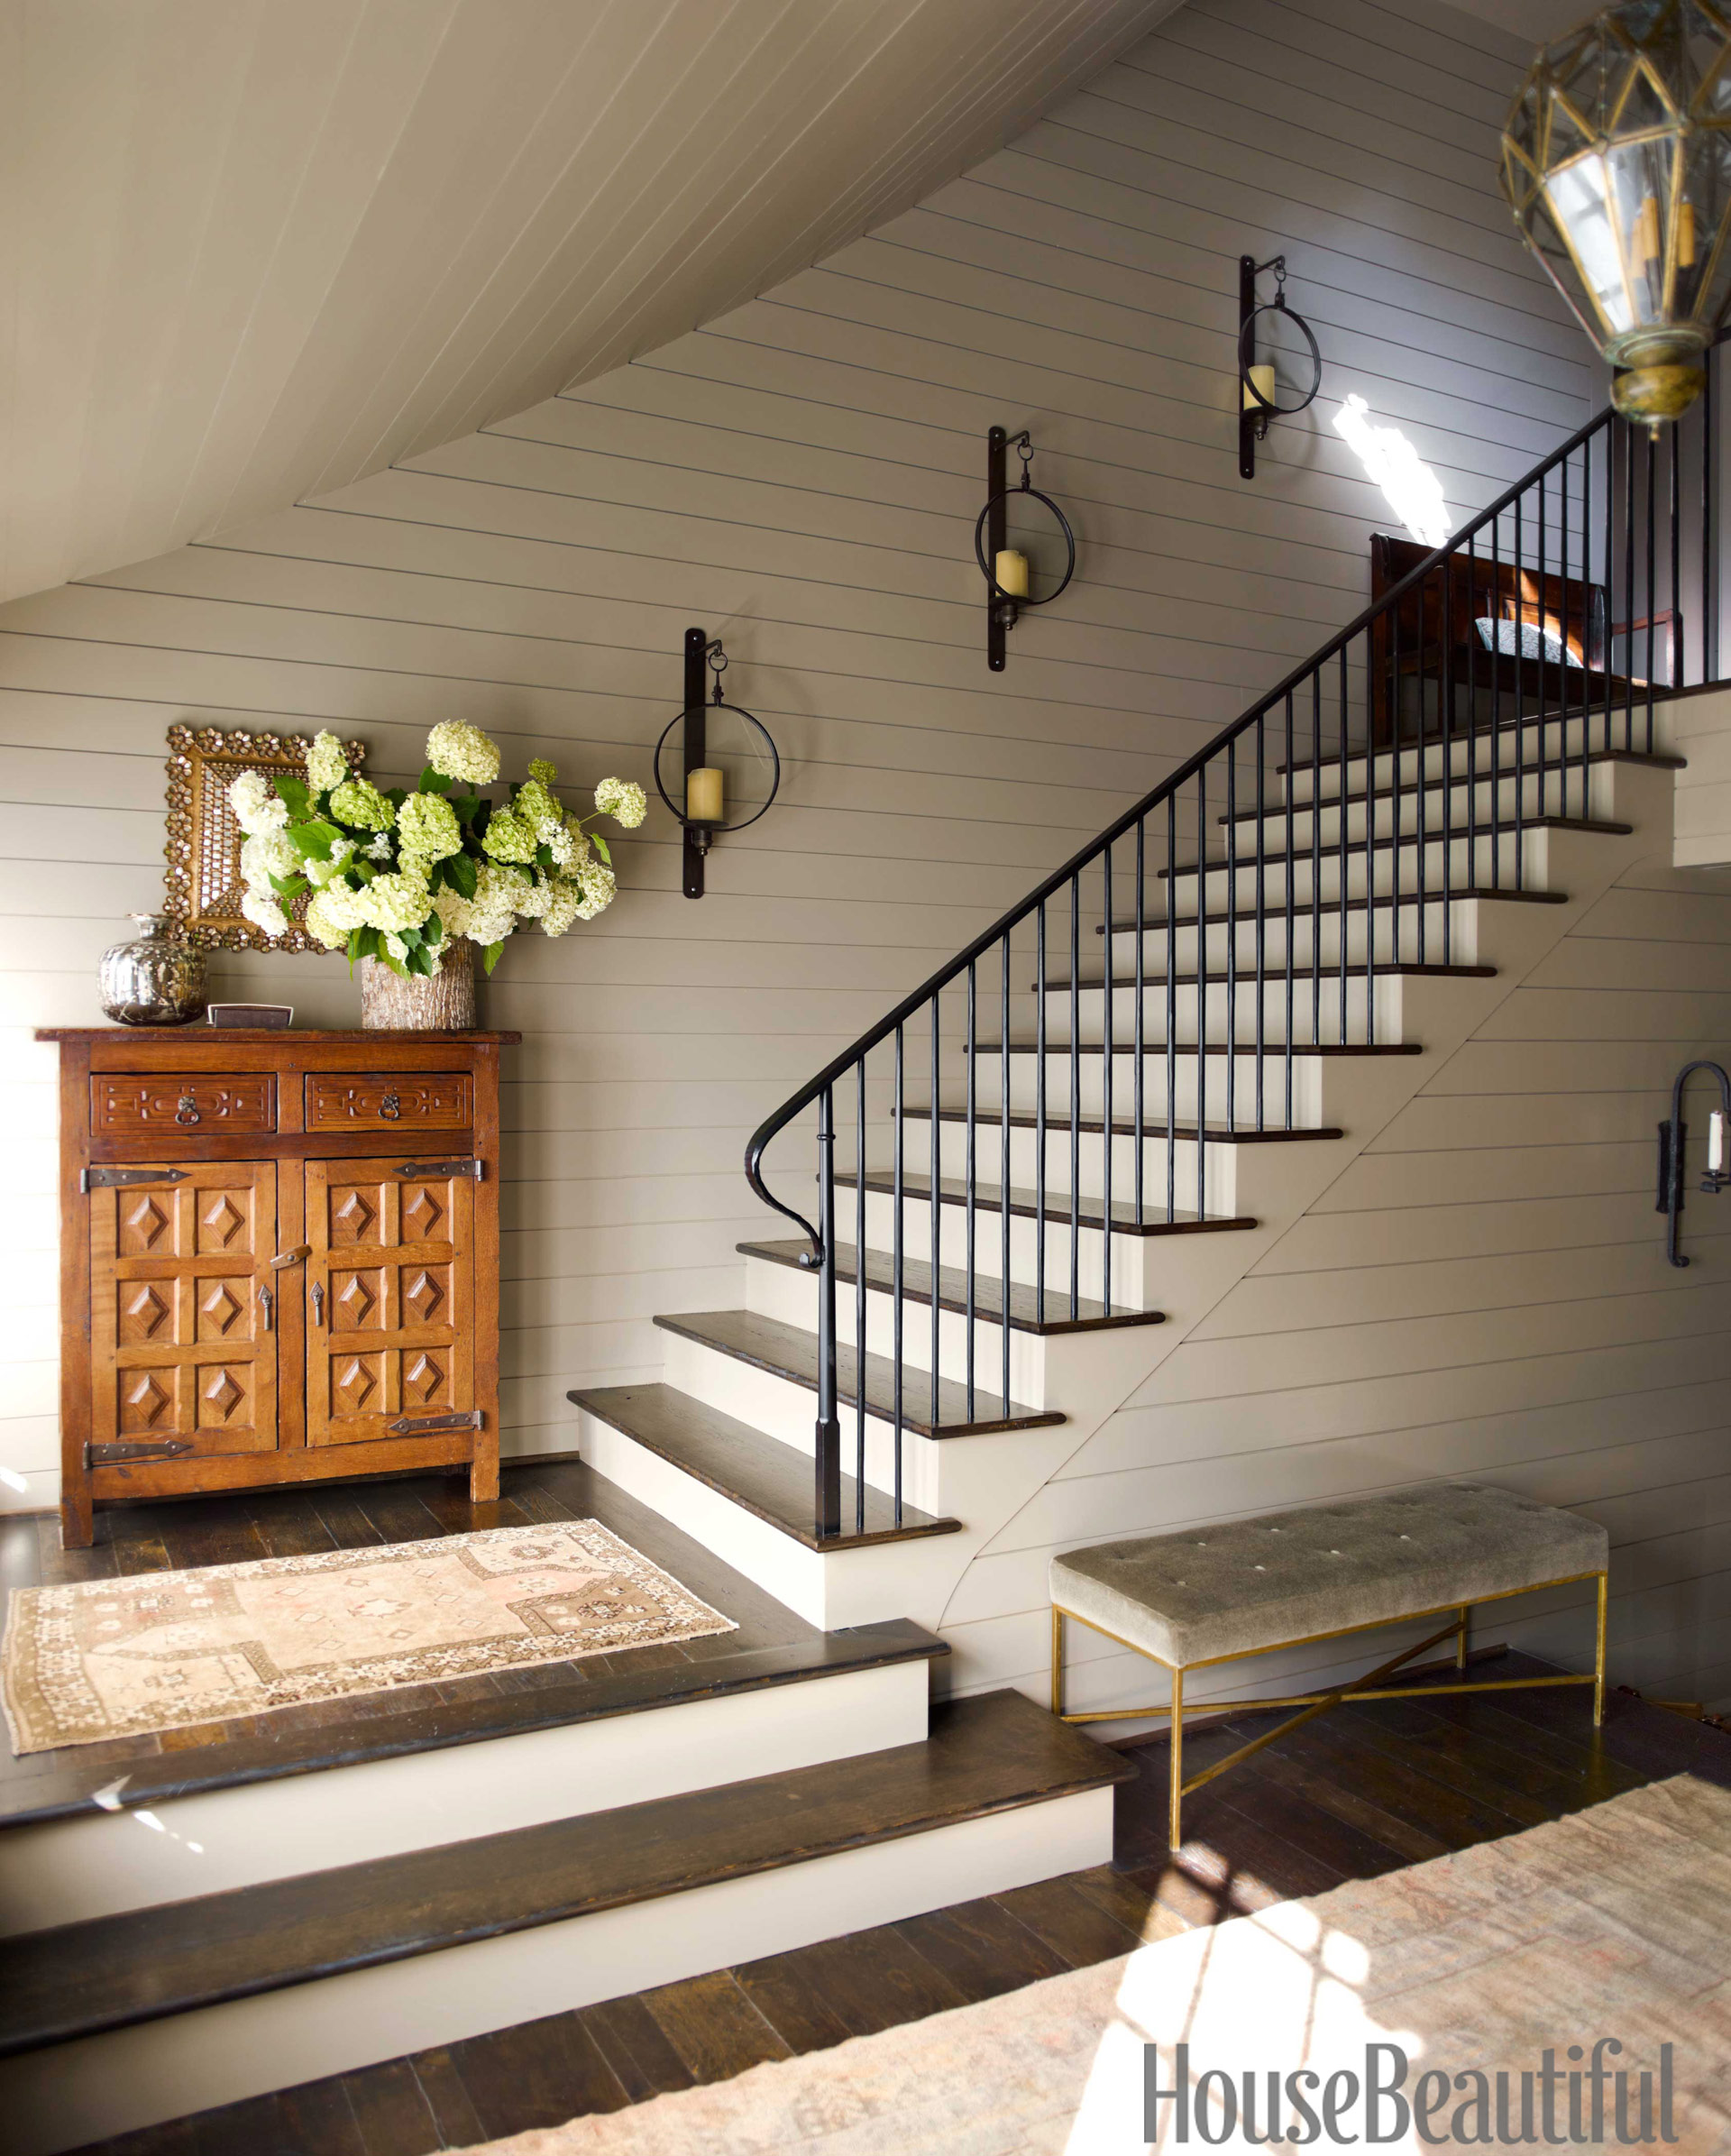 15 Residential Staircase Design Ideas: House Beautiful Pinterest